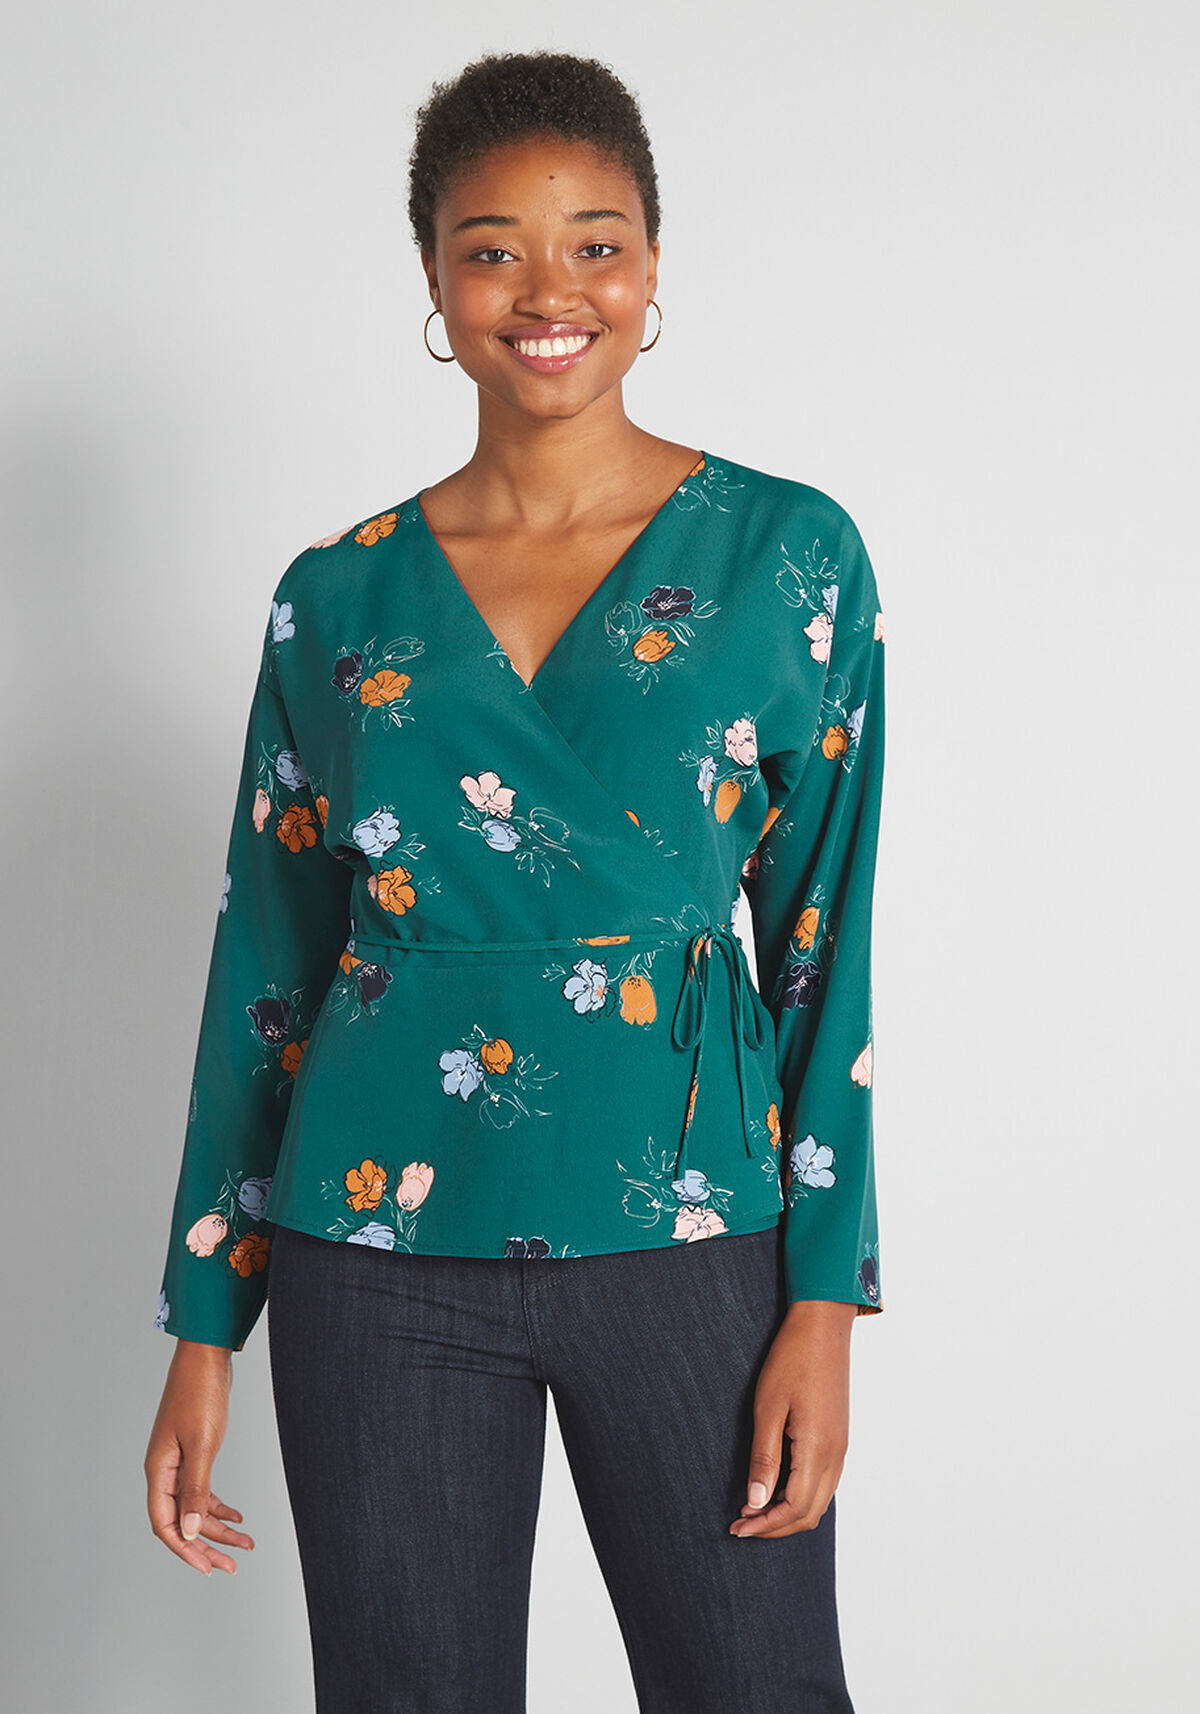 The top in dark green with blue, beige, and orange flowers and a tie waist